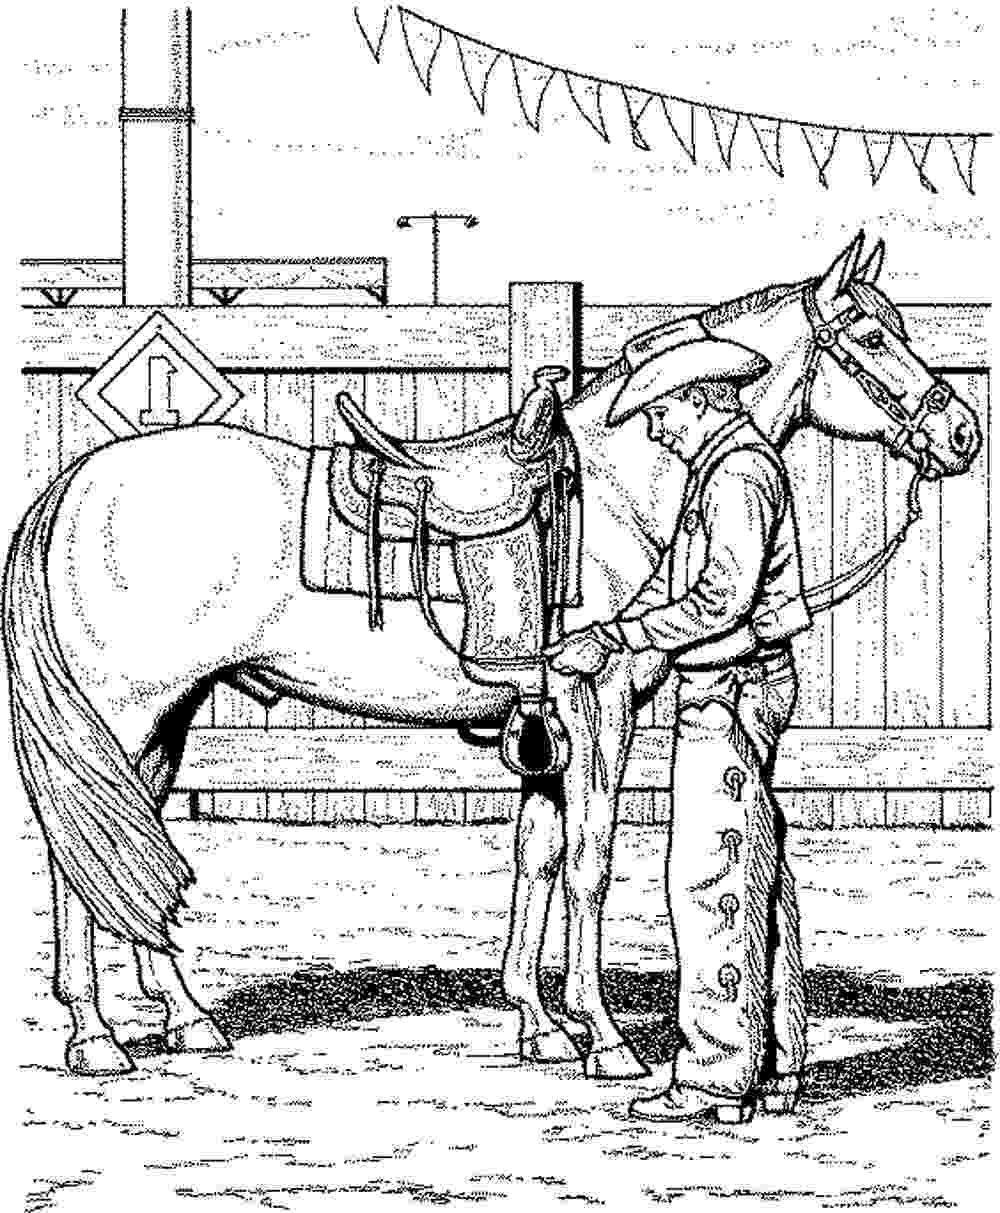 coloring pages of horses and ponies cute shetland pony coloring page free printable coloring coloring and ponies horses pages of